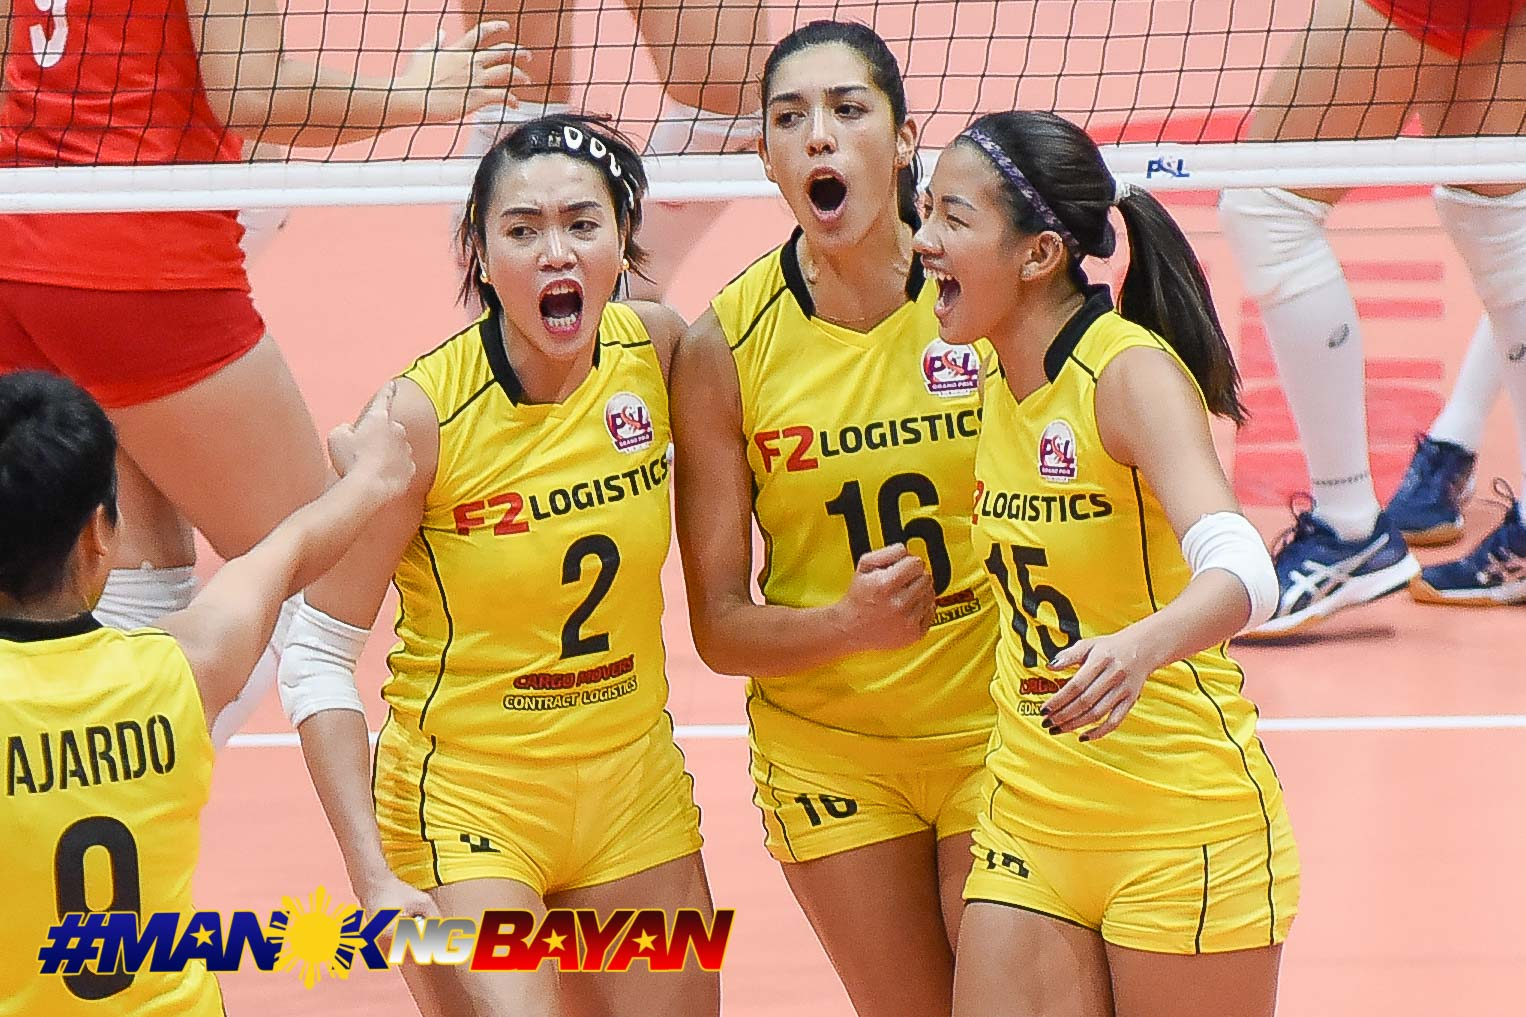 Philippine Sports News - Tiebreaker Times Ramil de Jesus sees simple solution for Cargo Movers: 'Kailangan lang namin pumasa' News PSL Volleyball  Ramil De Jesus F2 Logistics Cargo Movers 2017 PSL Season 2017 PSL Grand Prix